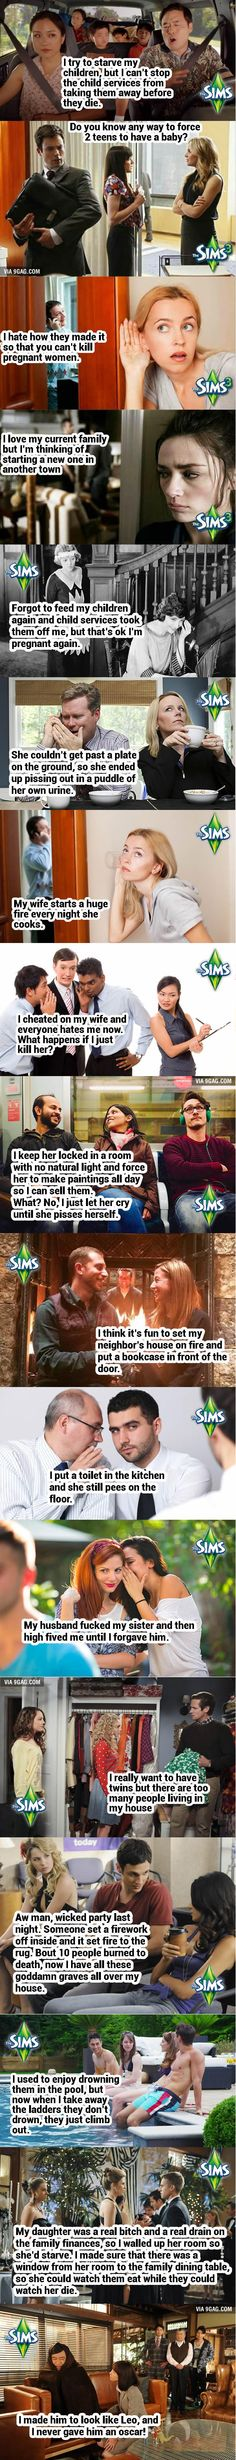 One Does Not Simply Discuss The Sims In Public XDDDDDDD The last one tho